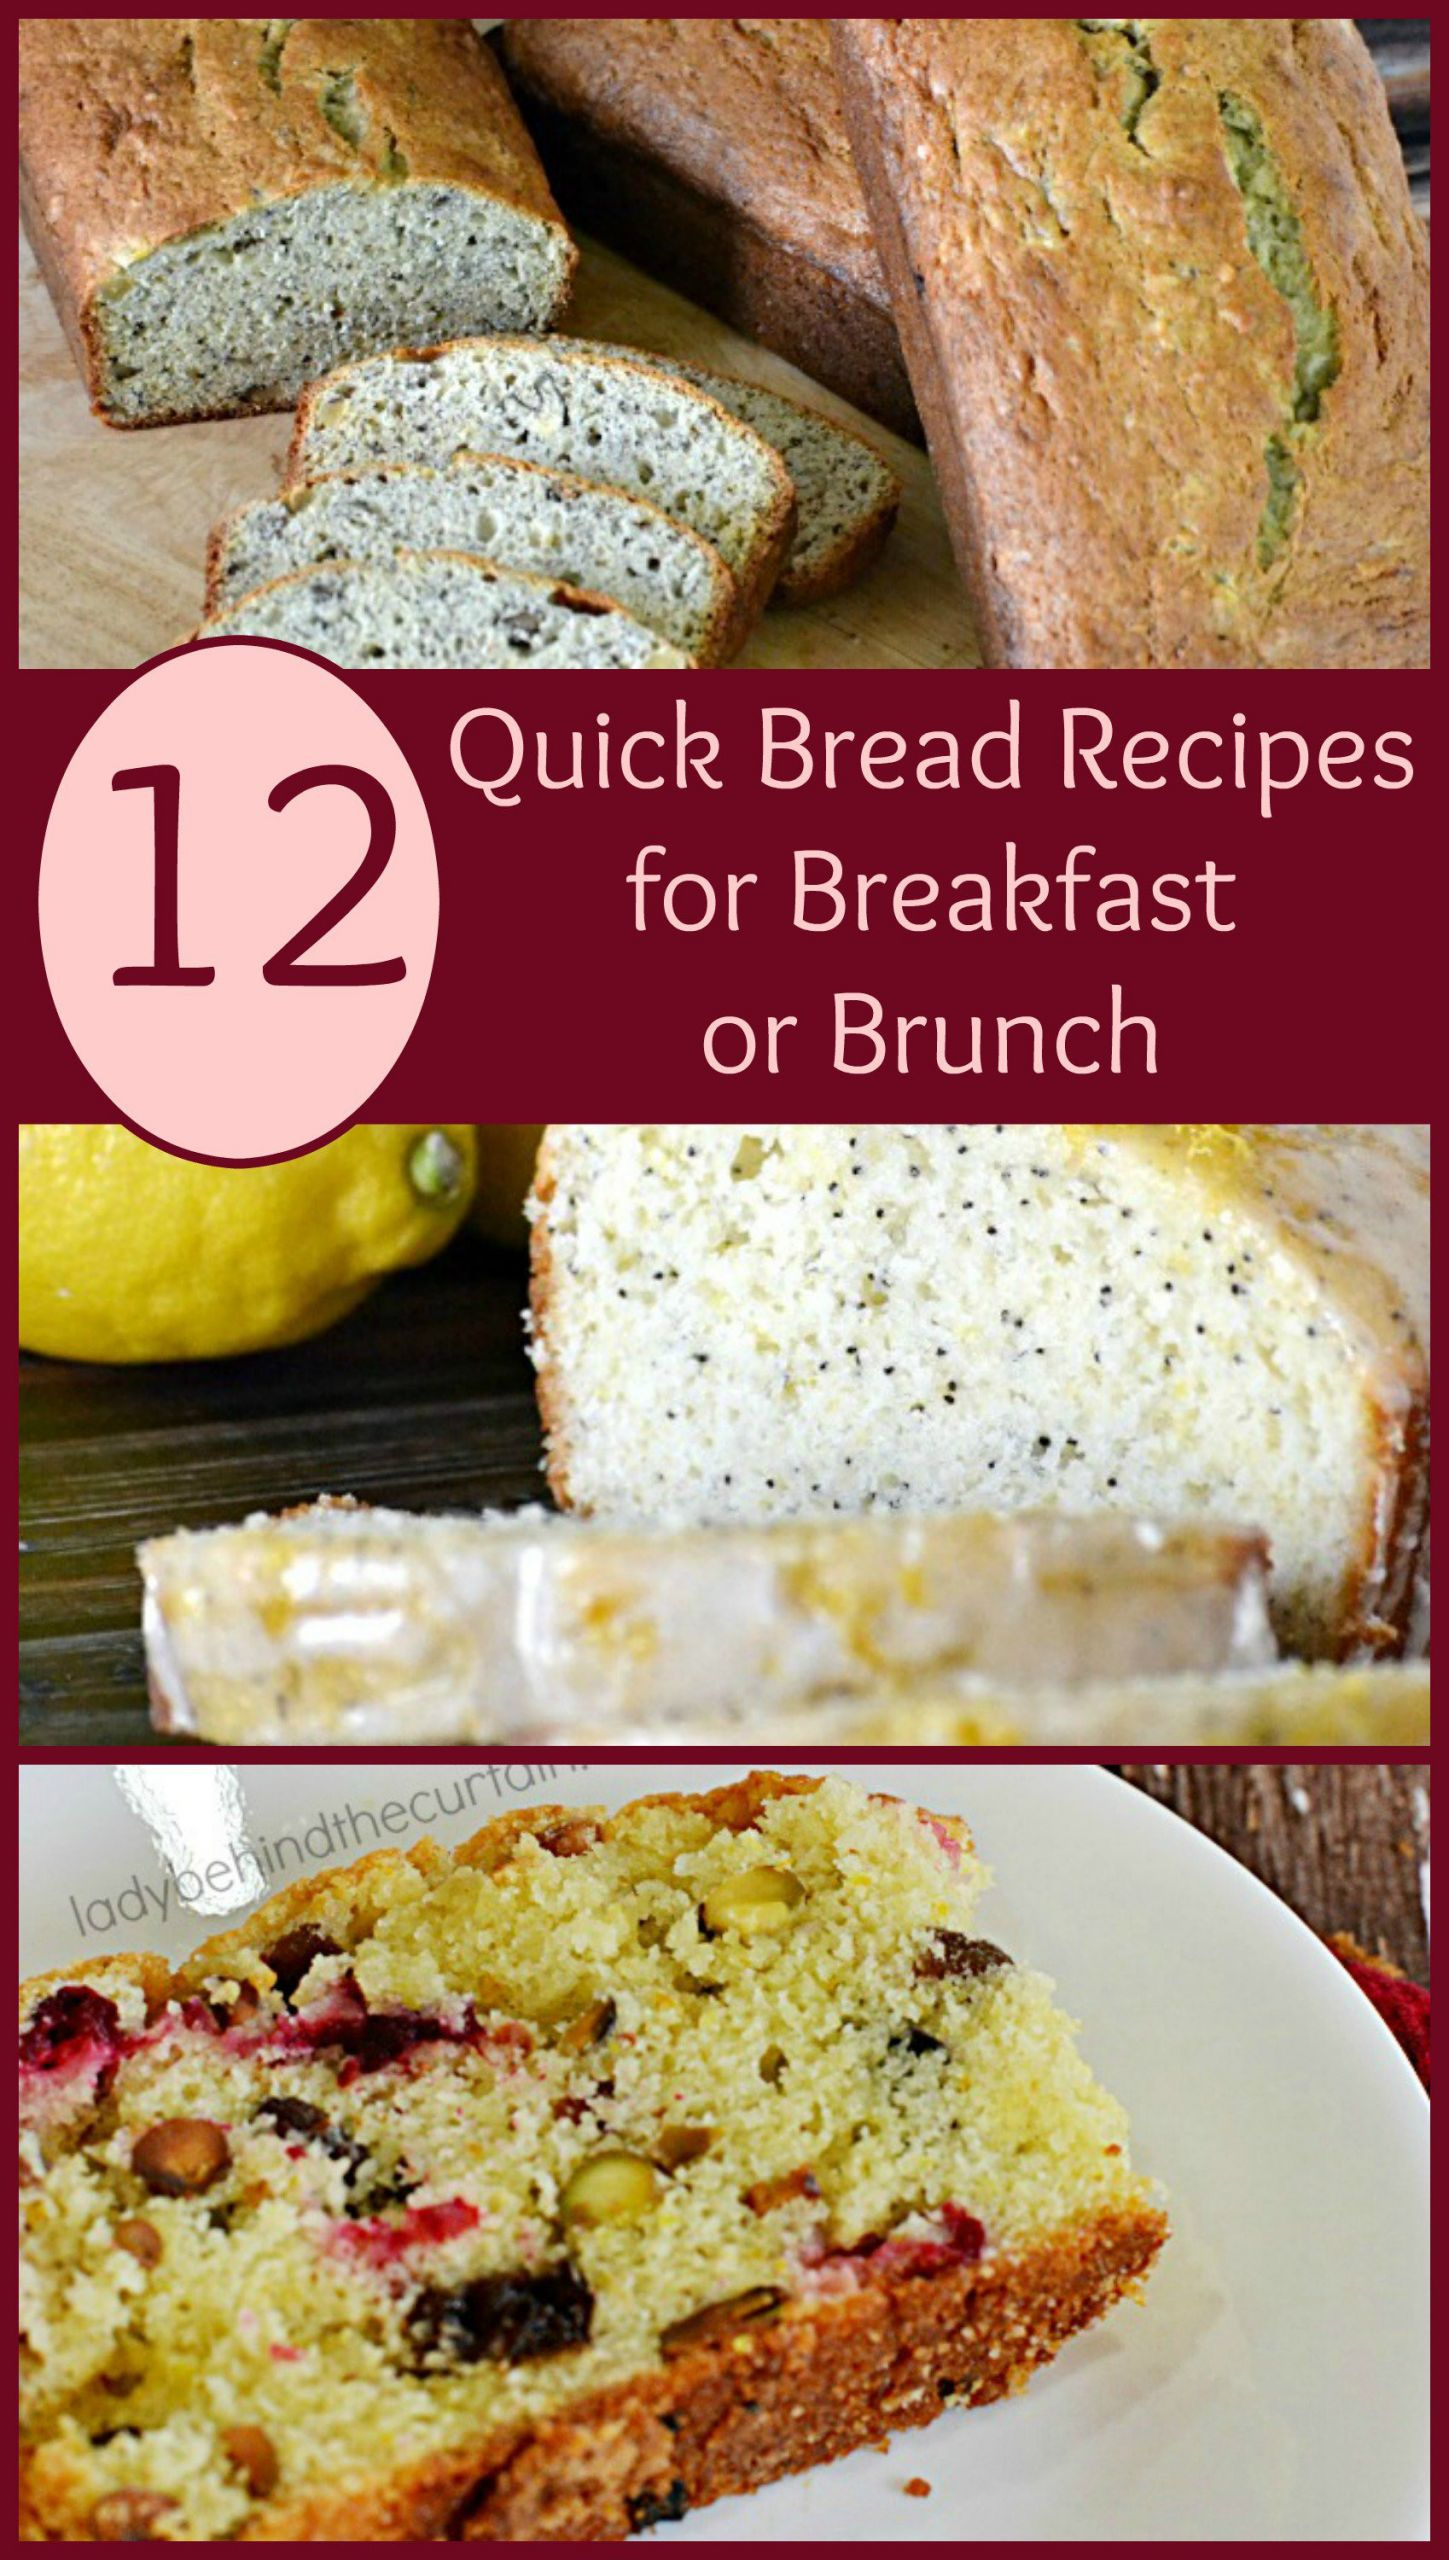 Quick Breakfast Recipes With Bread  12 Quick Bread Recipes for Breakfast or Brunch